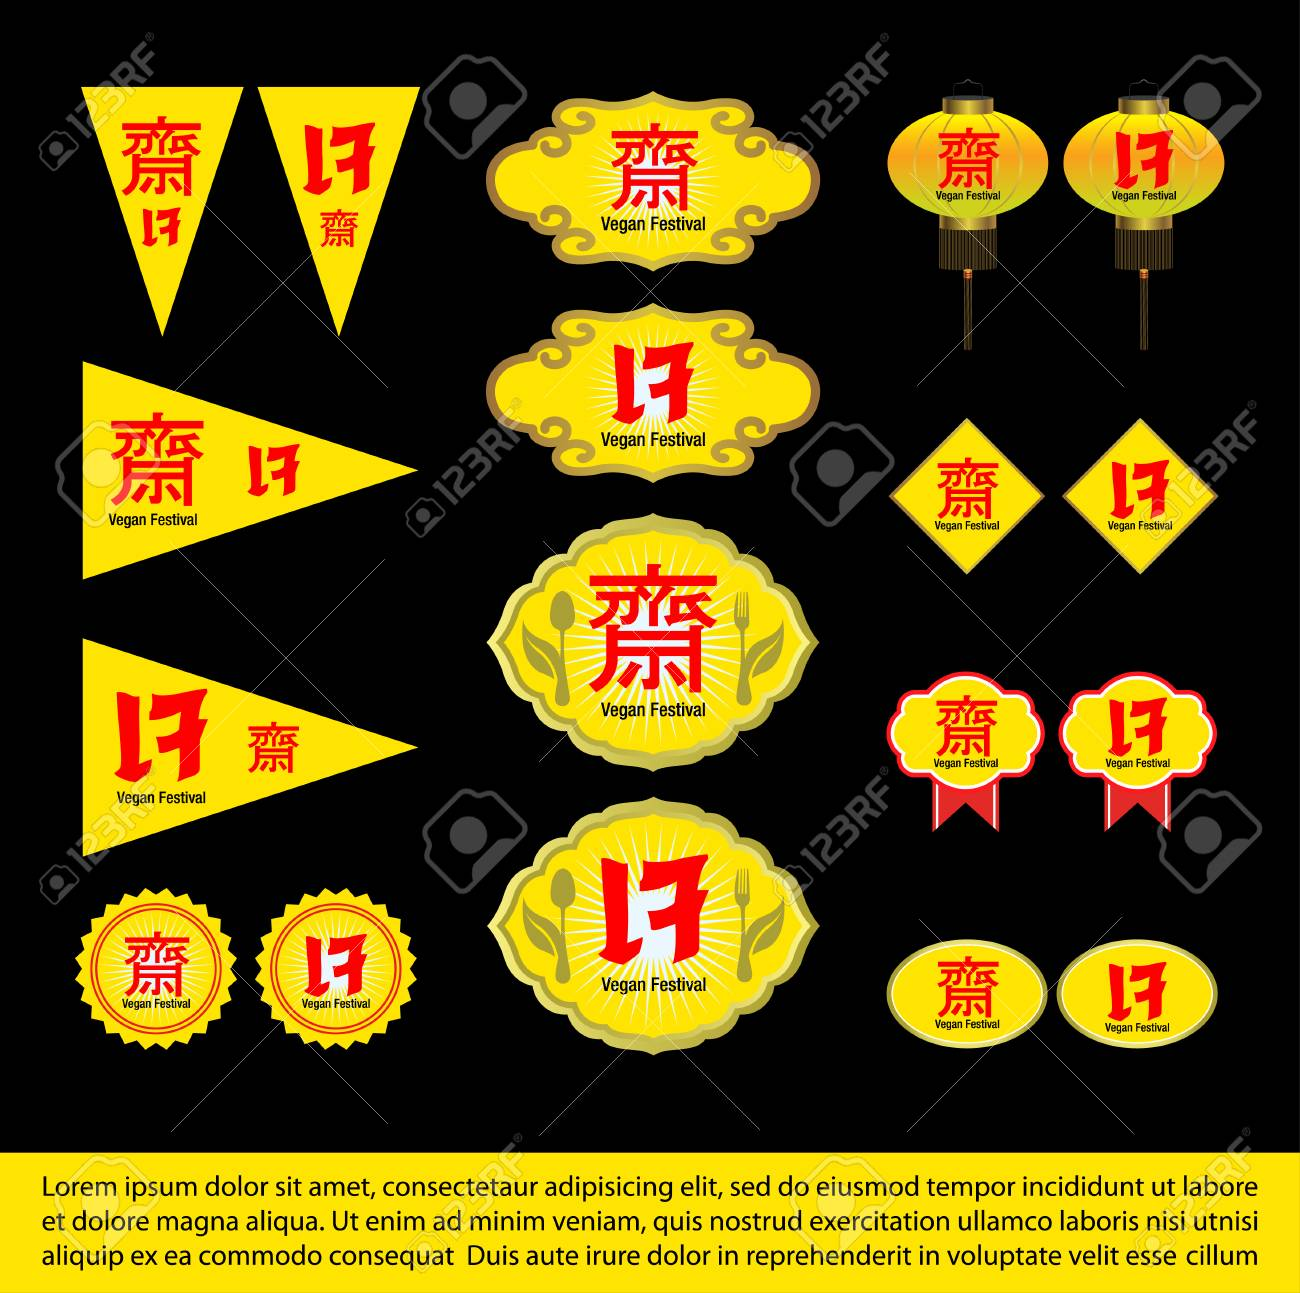 Chinese Vegetarian Festival symbol, label, and flag - 87779514